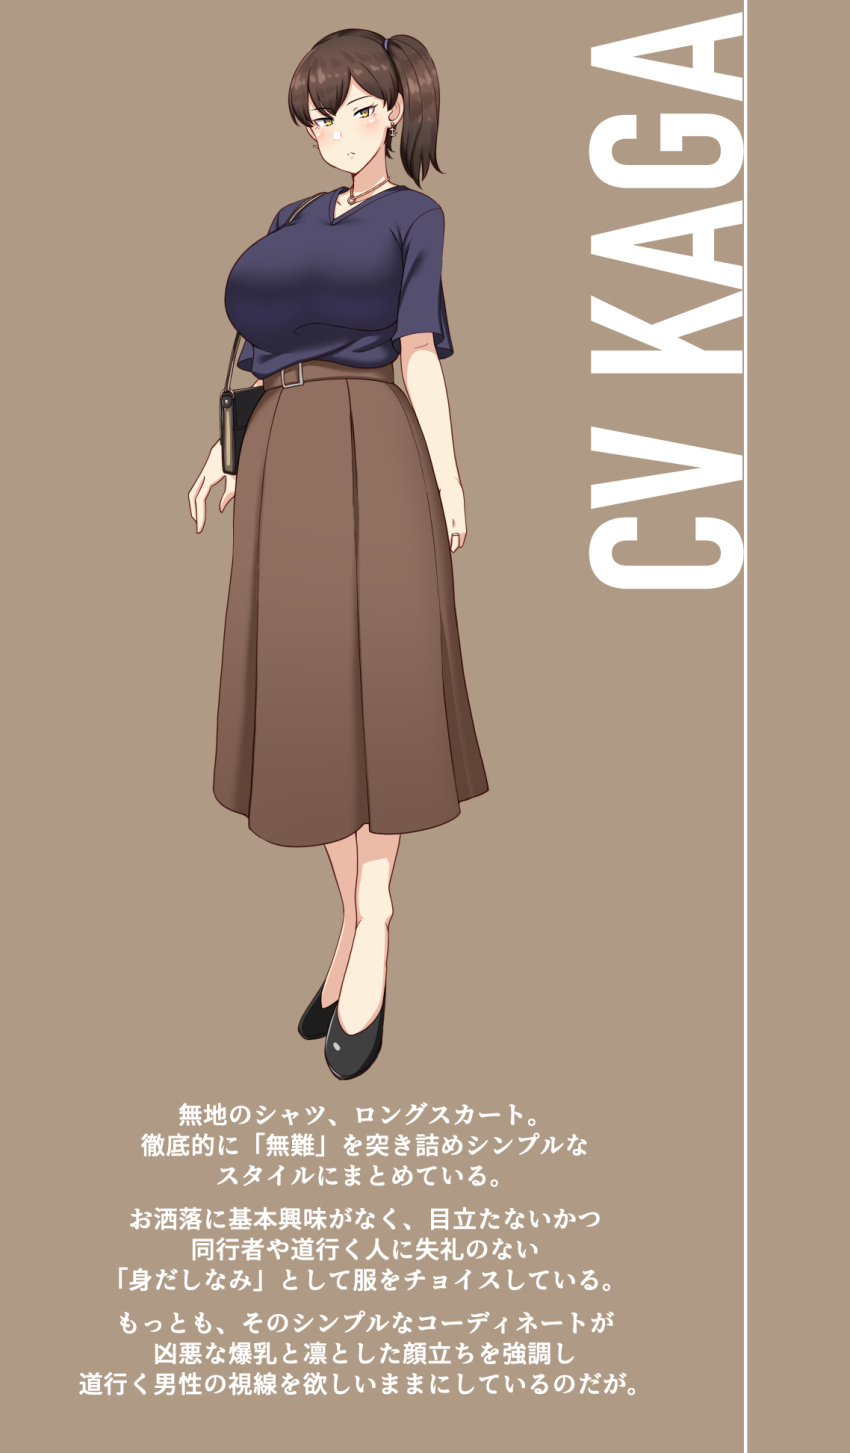 1girl alternate_costume anchor_earrings bag belt black_footwear blouse blue_blouse blush breasts brown_background brown_belt brown_eyes brown_hair brown_skirt character_name closed_mouth commentary_request earrings eyebrows_visible_through_hair full_body highres huge_breasts jewelry kaga_(kantai_collection) kantai_collection long_hair long_skirt mature ryuun_(stiil) shoes short_sleeves side_ponytail simple_background skirt solo translation_request